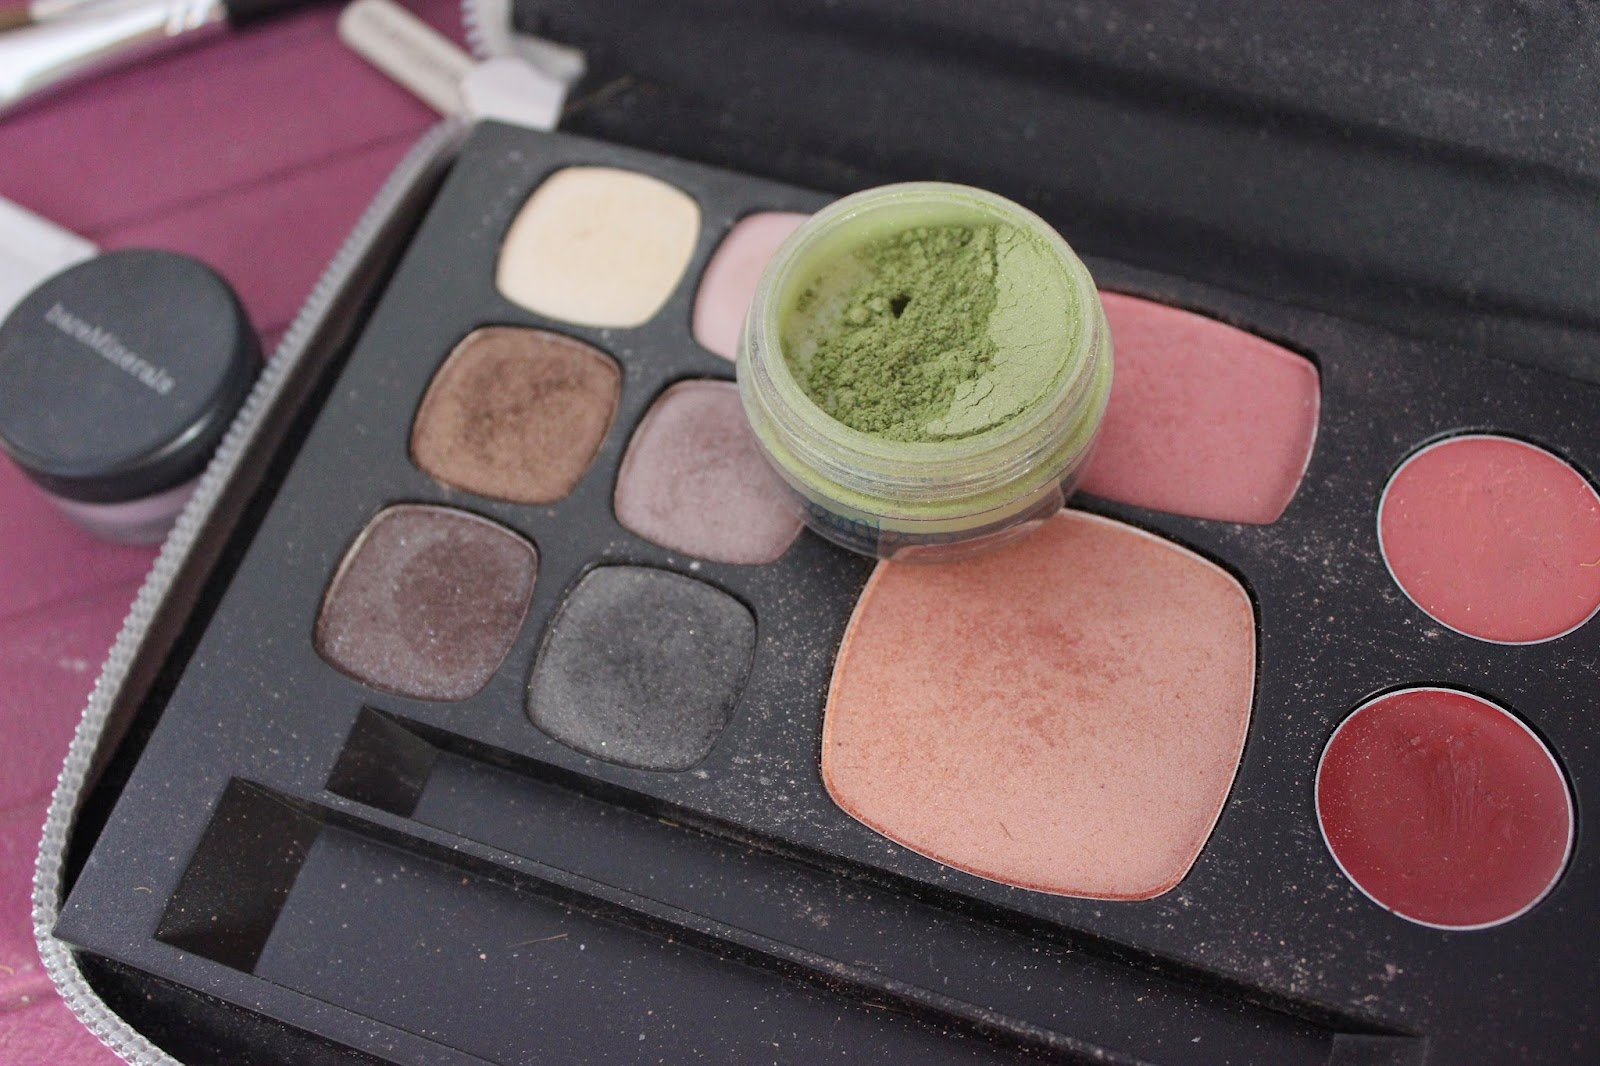 maquillage bareminerals